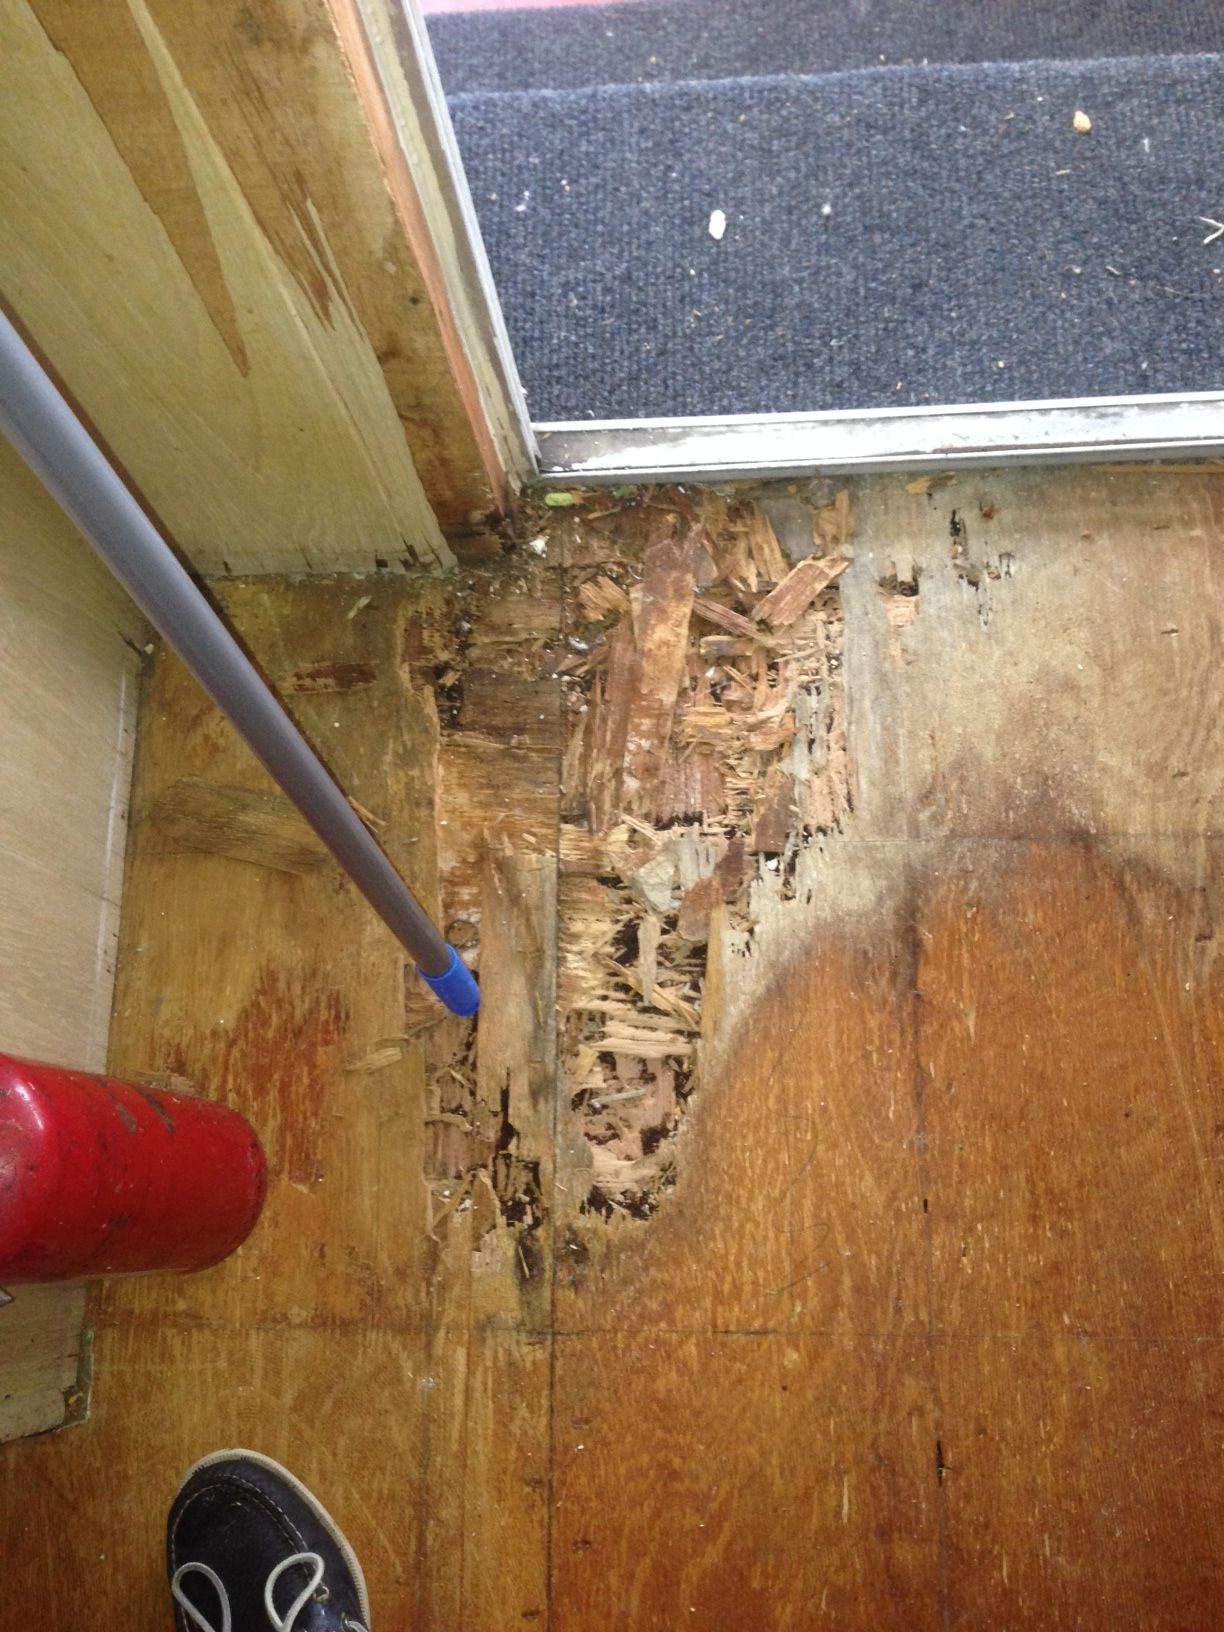 Drywood Termite Damage Here You Can See The Subfloor Of A Home Which Was Vacant For Many Years The Termites Des Termite Damage Drywood Termites Wood Termites